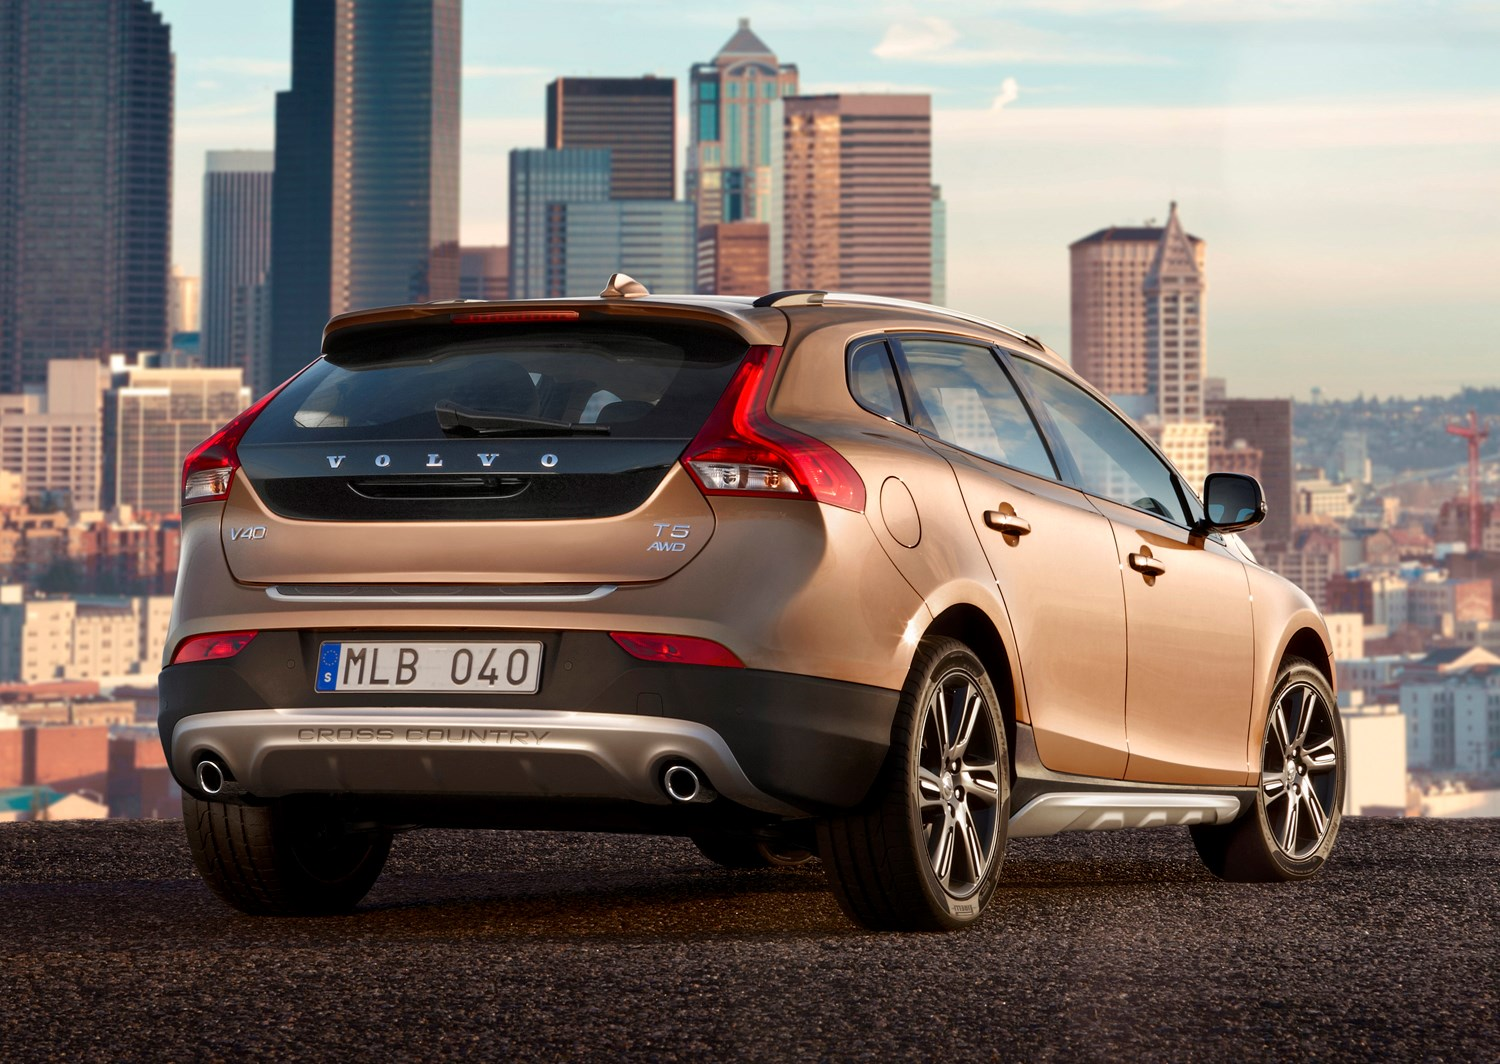 Volvo V40 Cross Country Review 2013 Parkers 2006 S40 Engine Diagram